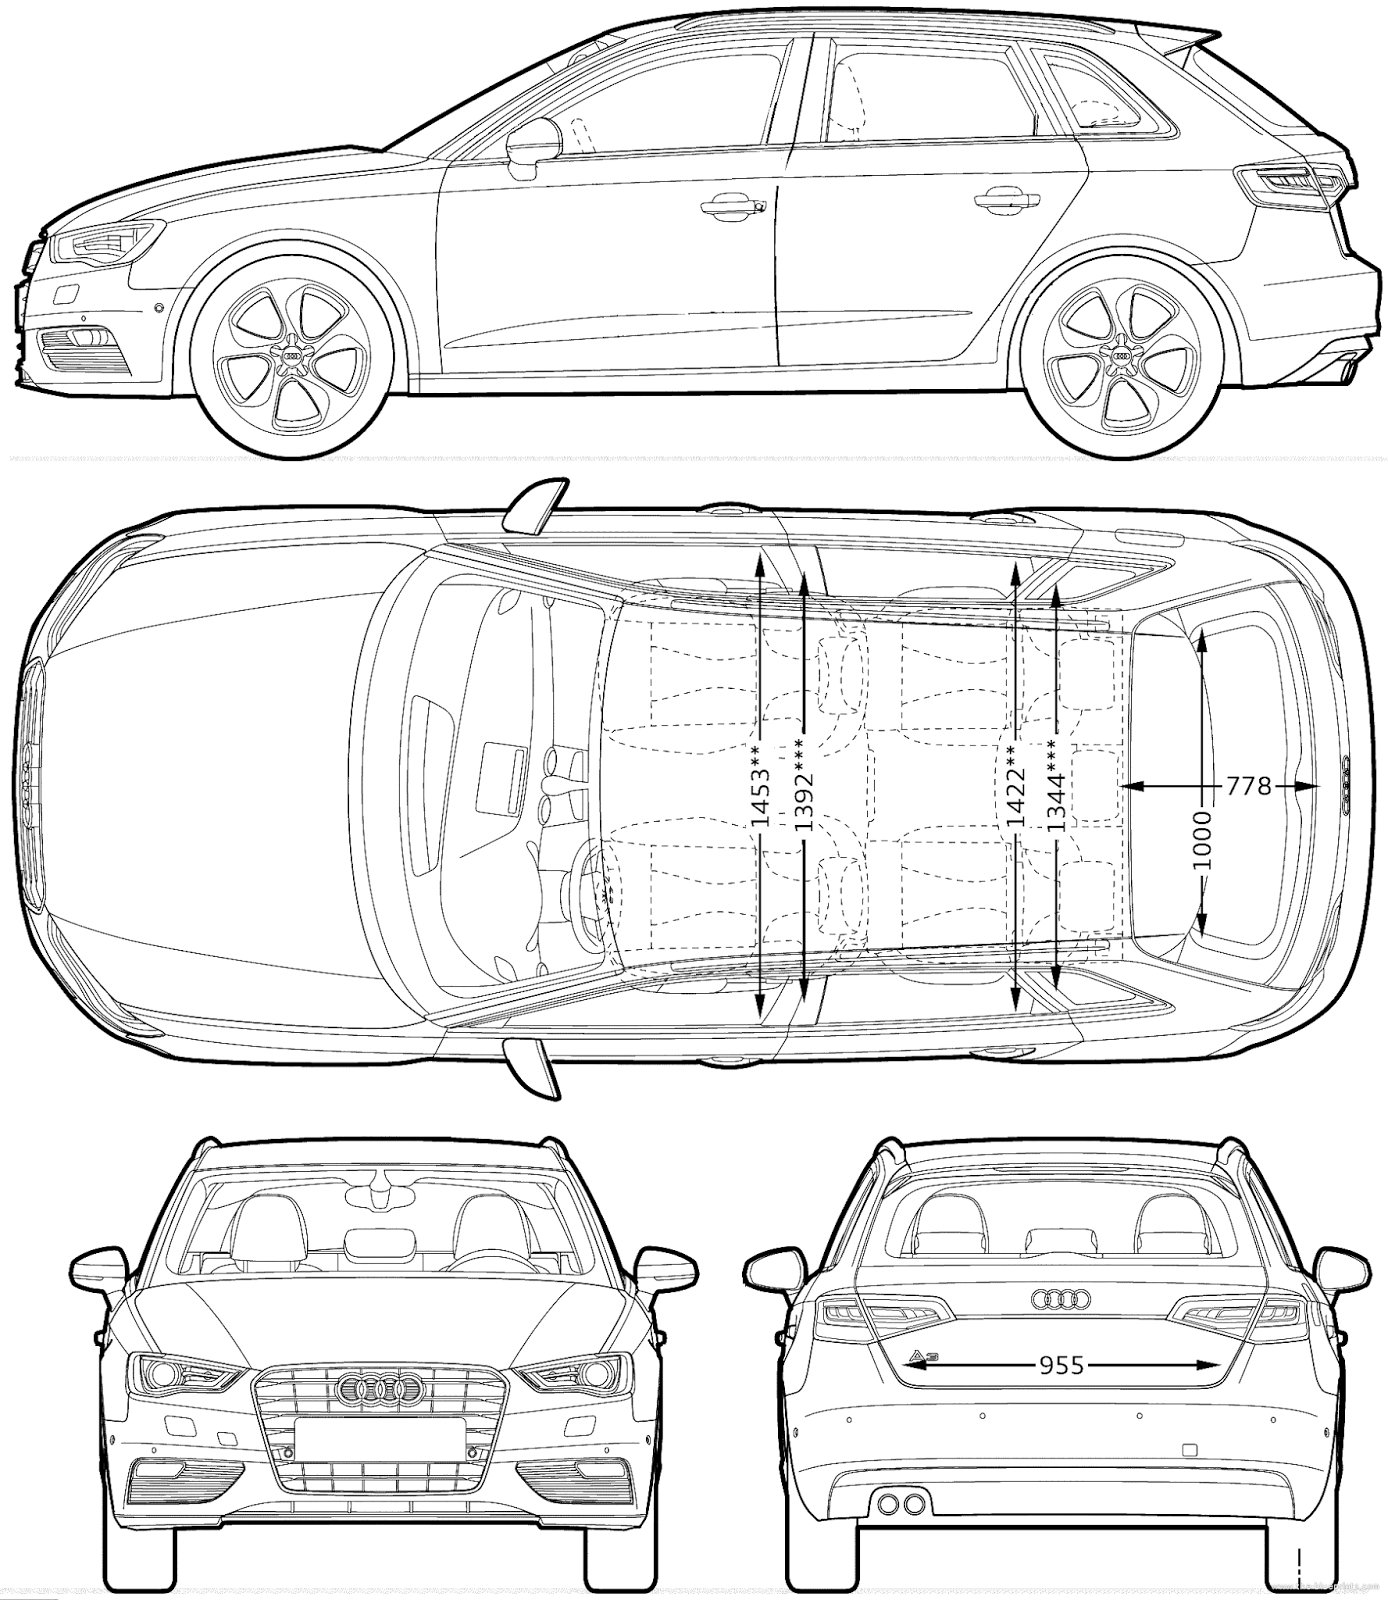 Latest Audi A3 Sportback Blueprints Audi A3 Sportback Car Free Download